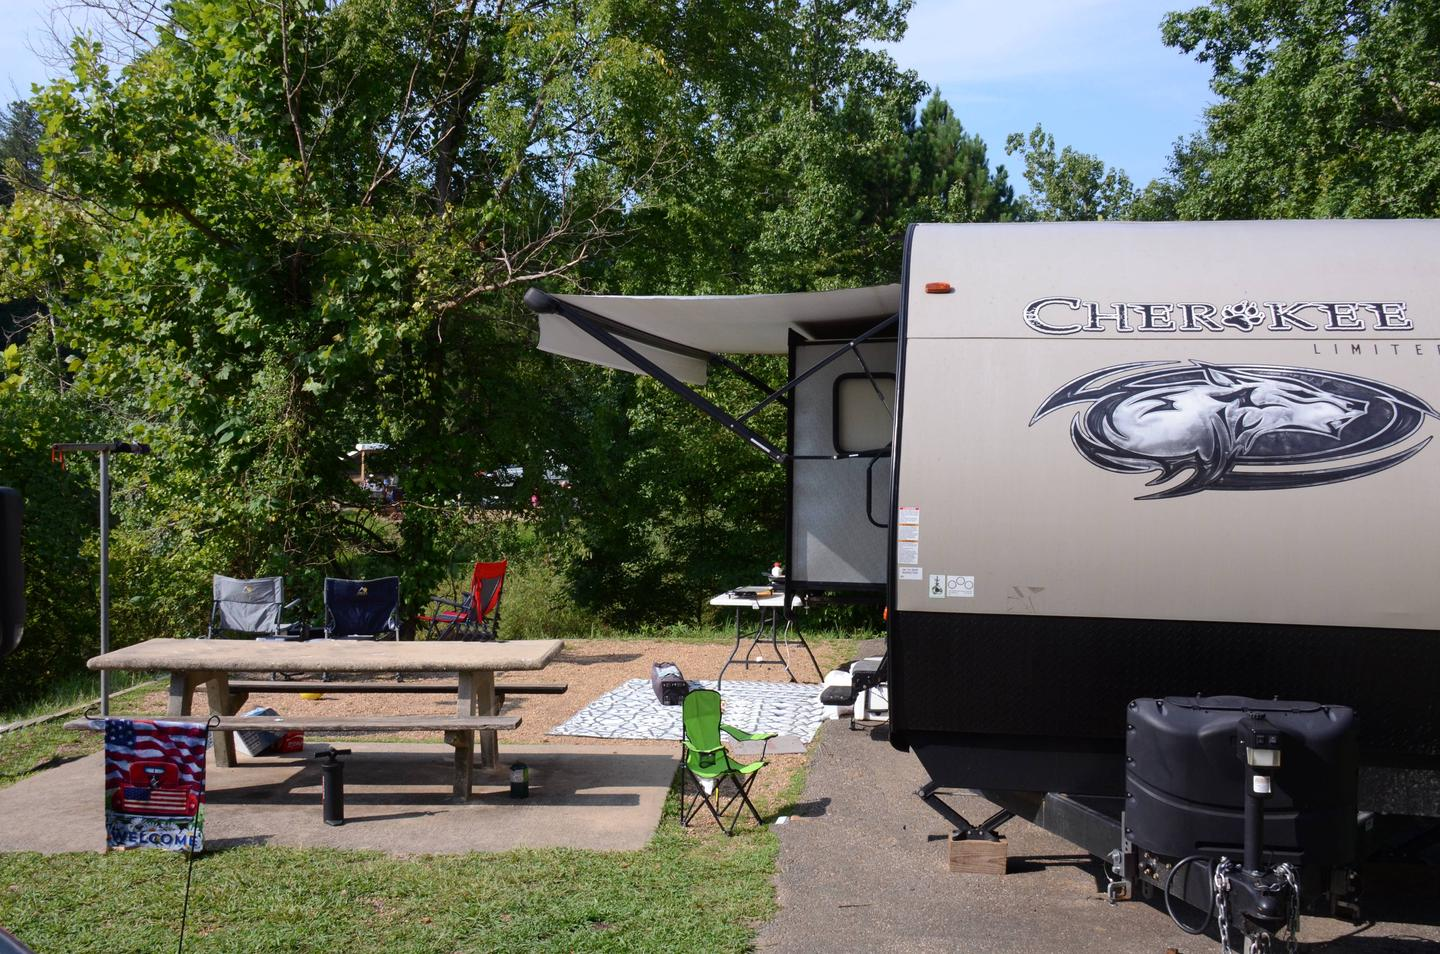 Awning-side clearance, campsite view.Payne Campground, campsite 26.